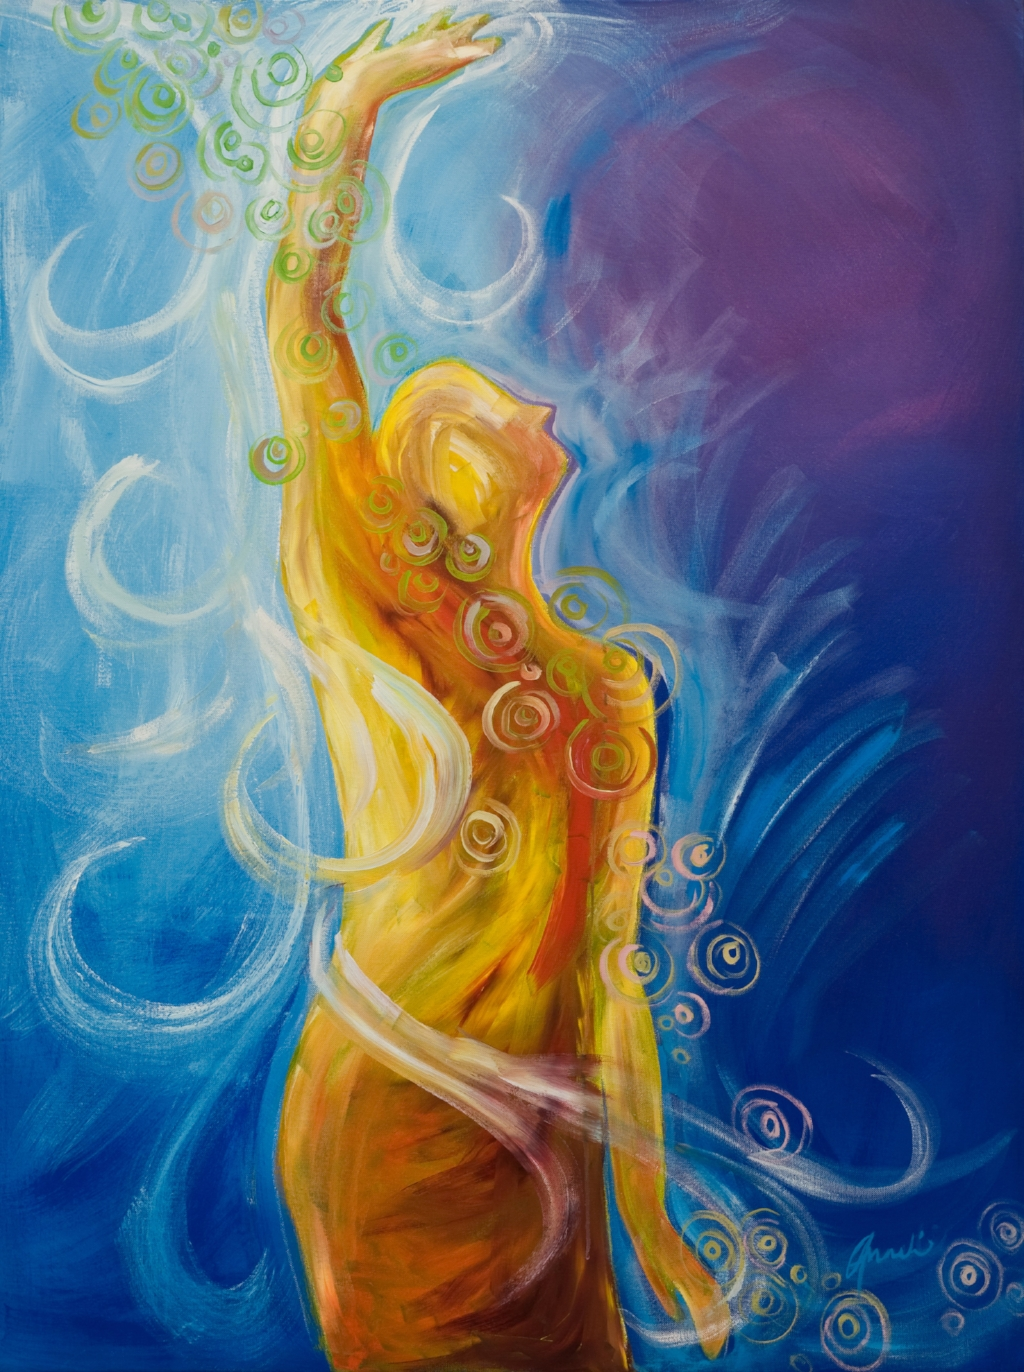 """""""Salt of the Earth"""", an original piece by artist  Anneli Anderson ."""